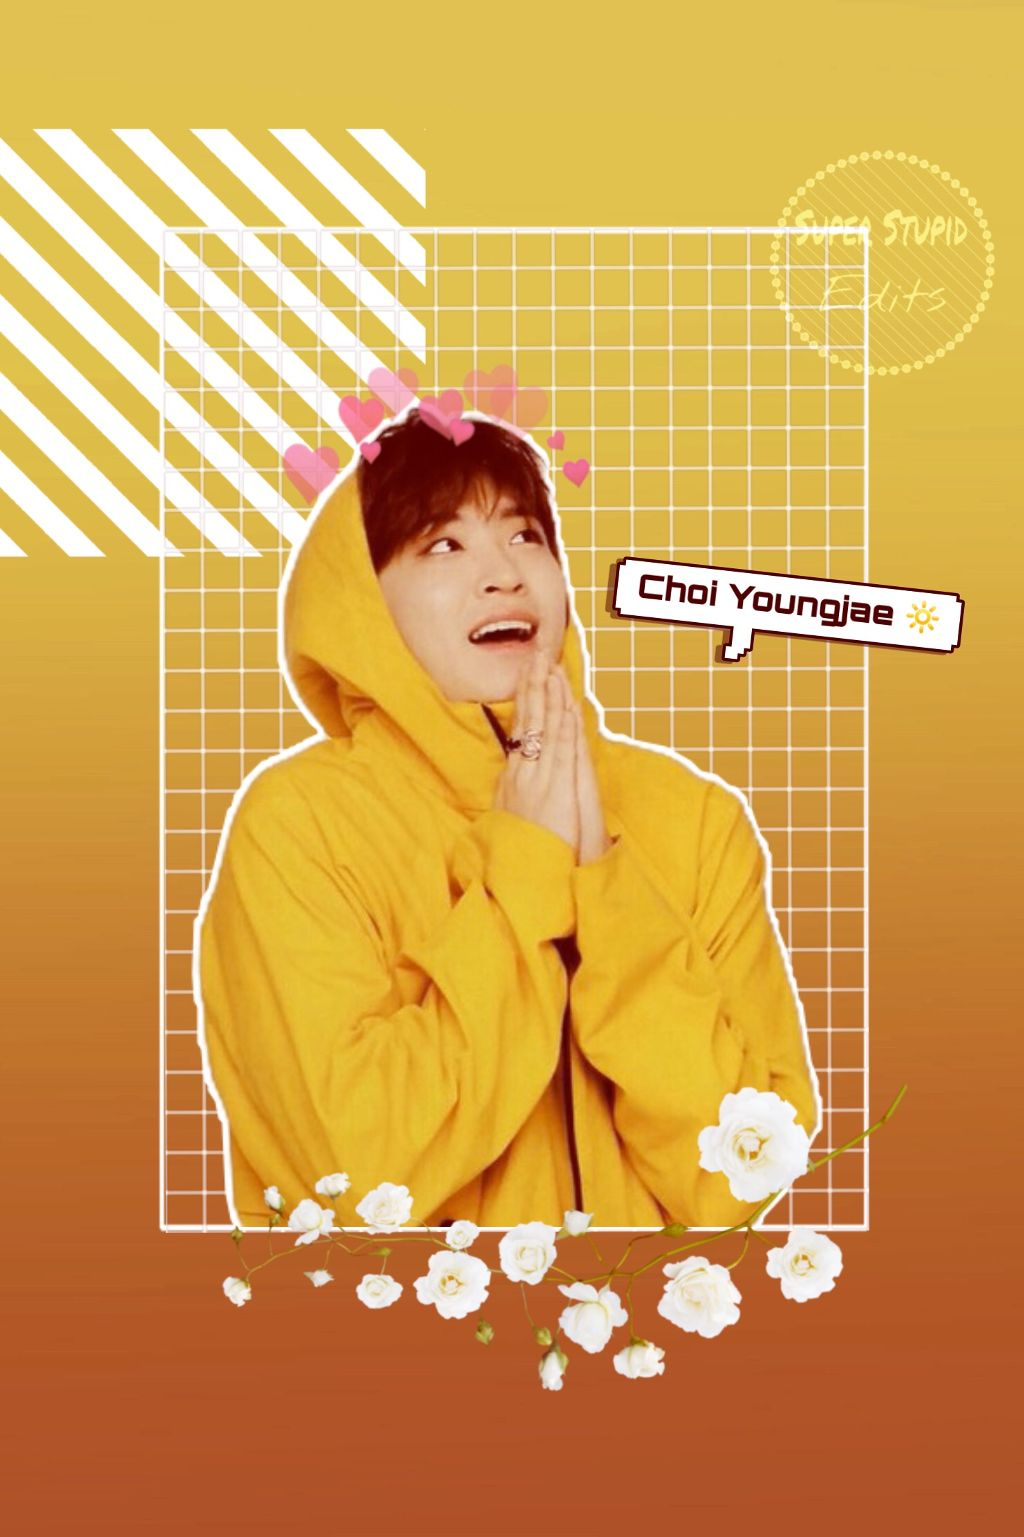 freetoedit wallpaper kpop choiyoungjae youngjae got7 1024x1537